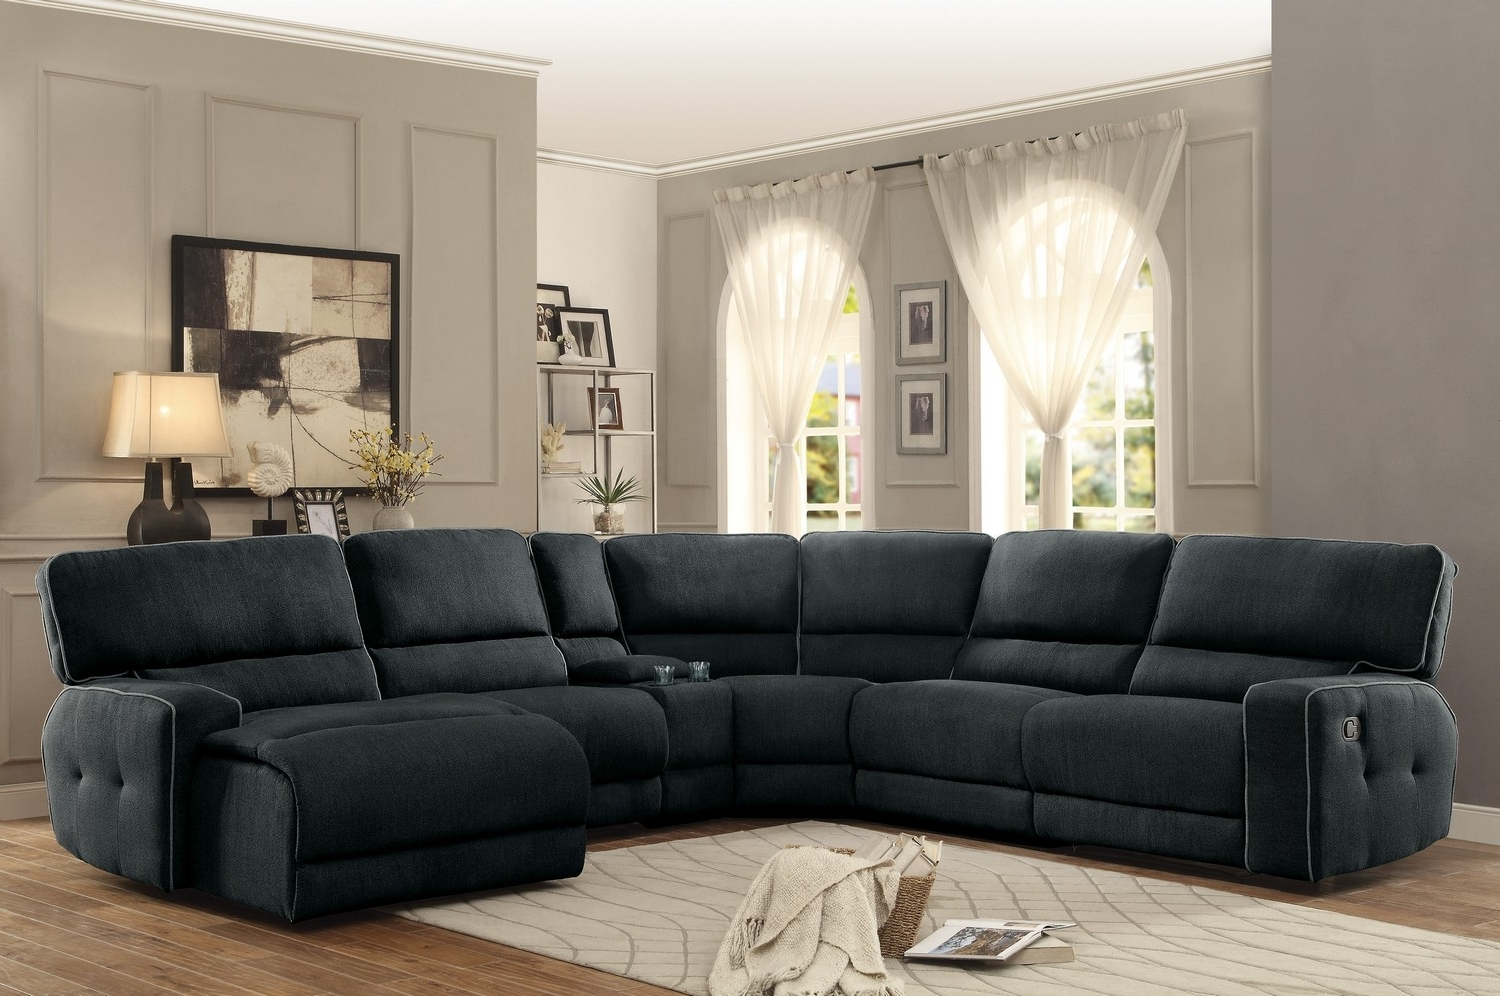 Dallas Sectional Sofas Regarding Popular Homelegance Keamey Reclining Sectional Sofa Set A – Polyester (View 4 of 20)